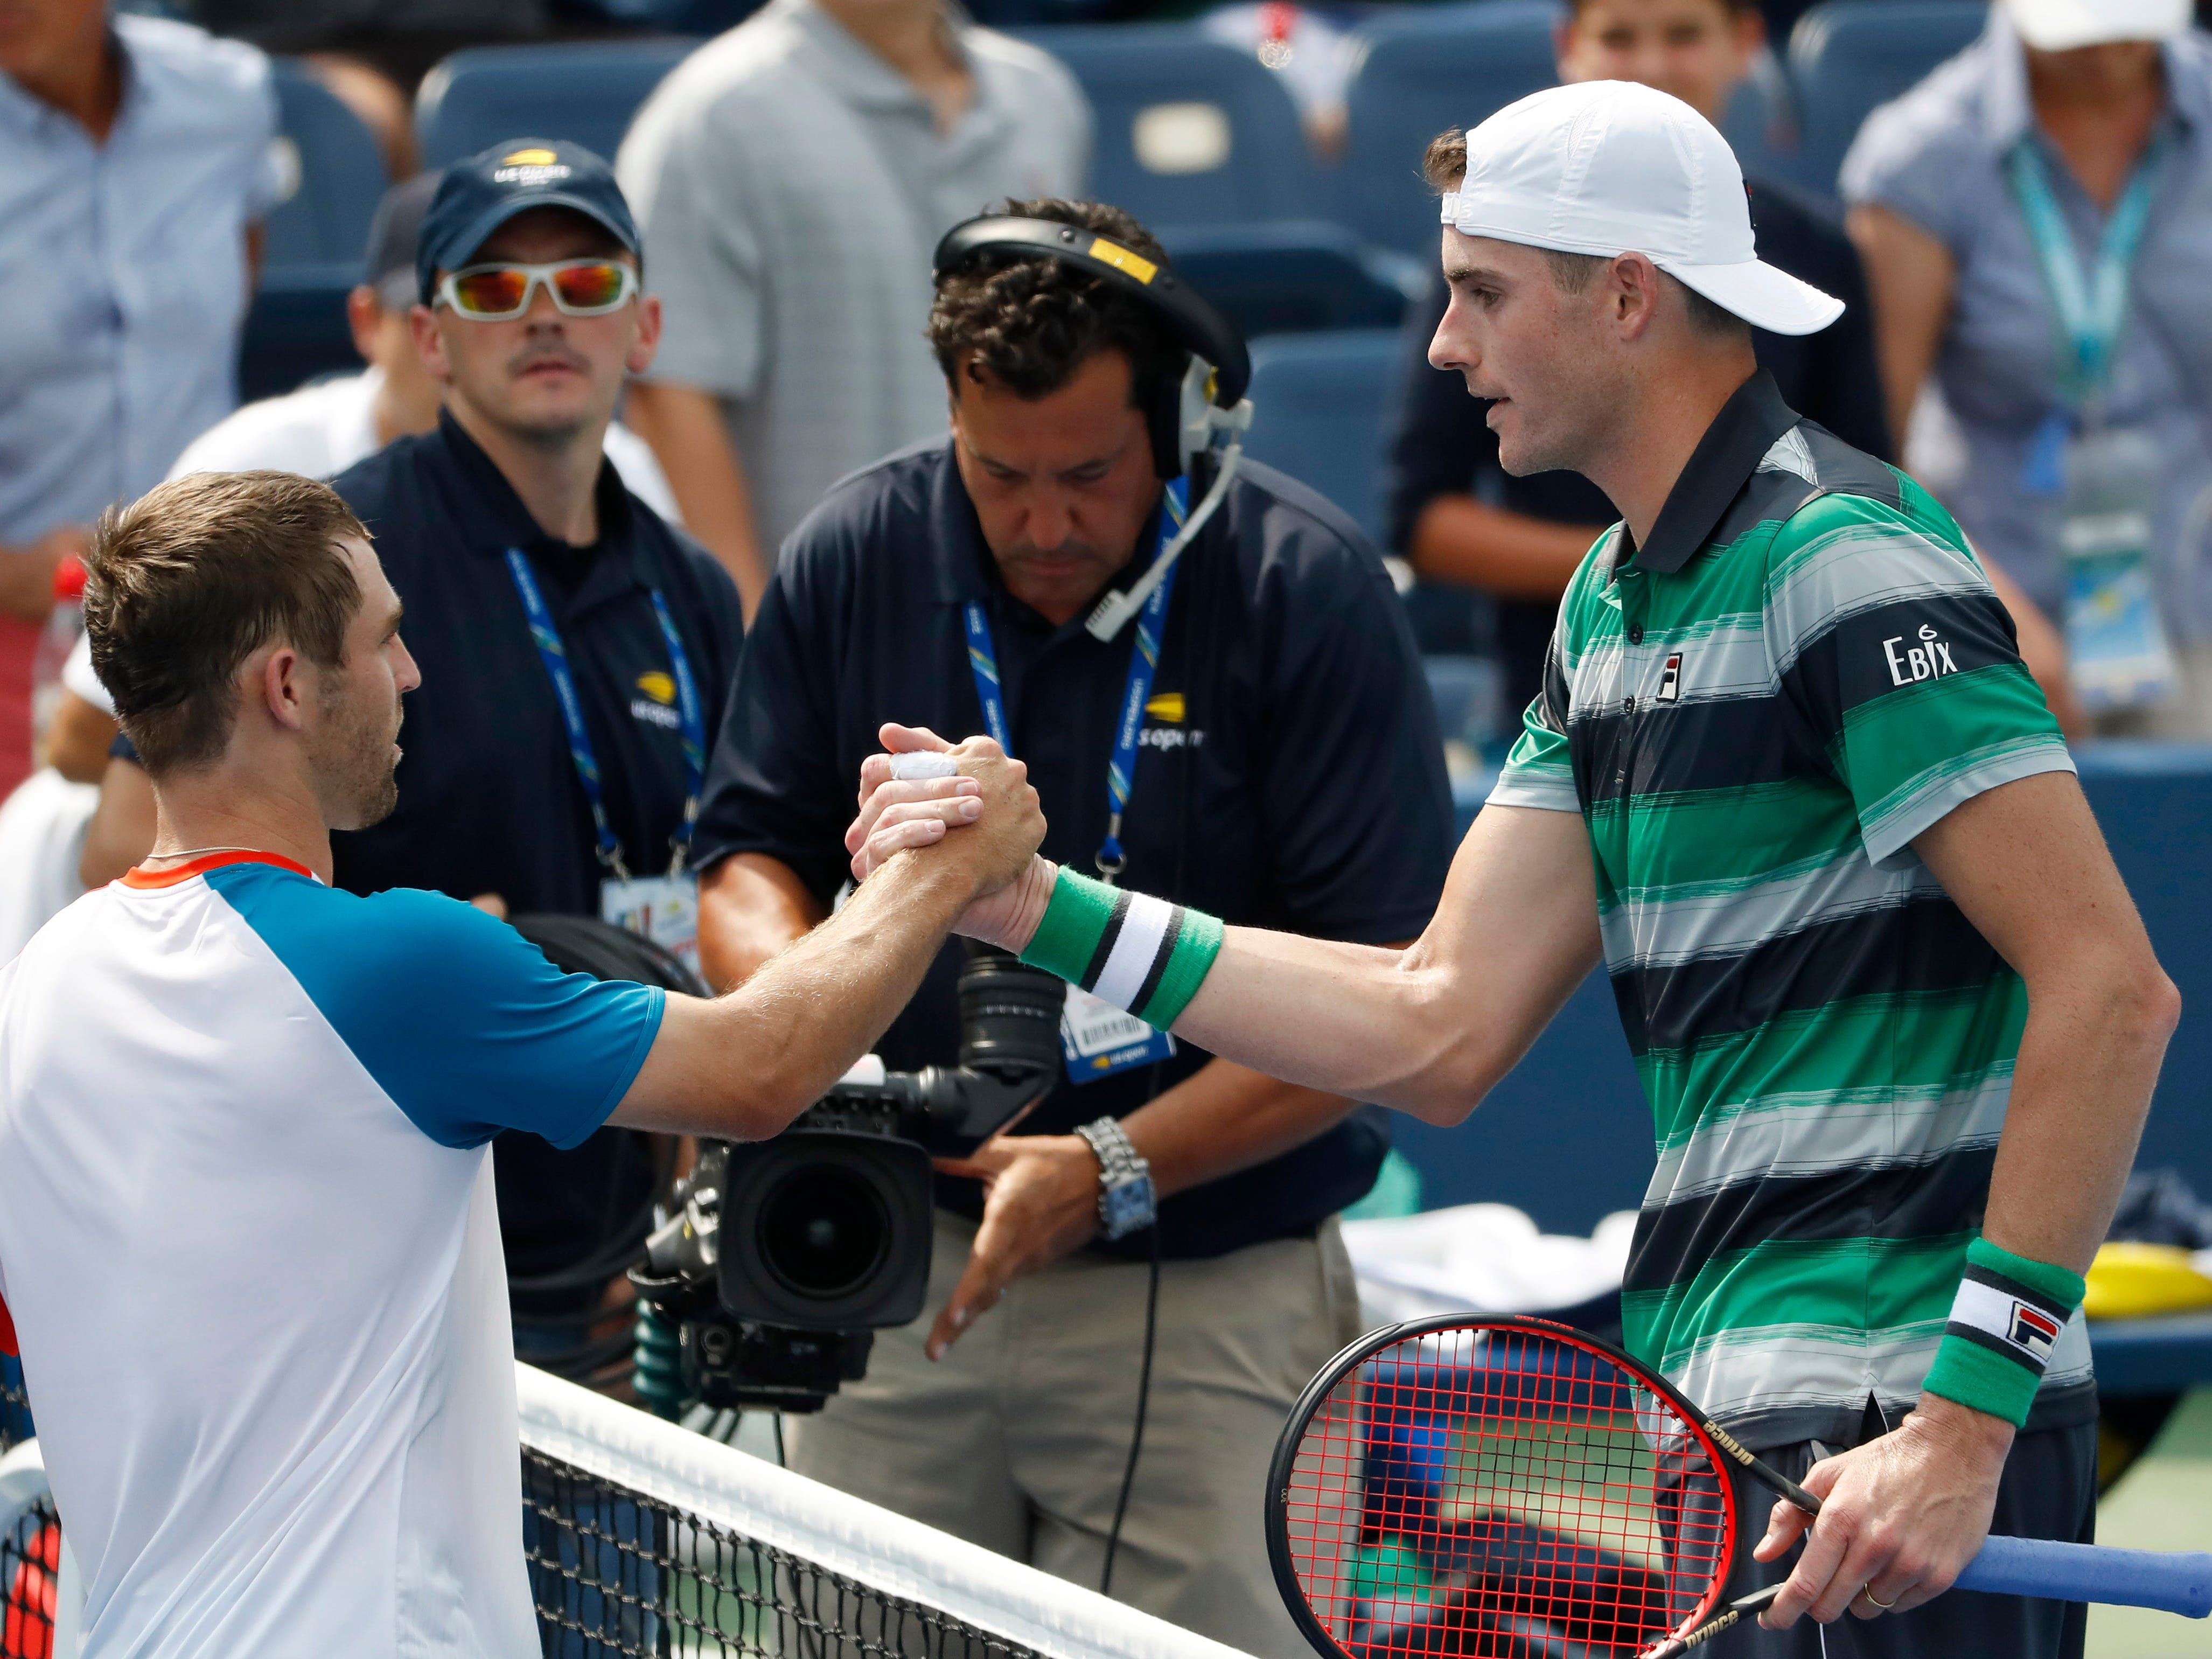 John Isner (right) shakes hands with fellow American Bradley Klahn. Isner won 7-6 (3), 6-3, 6-4.